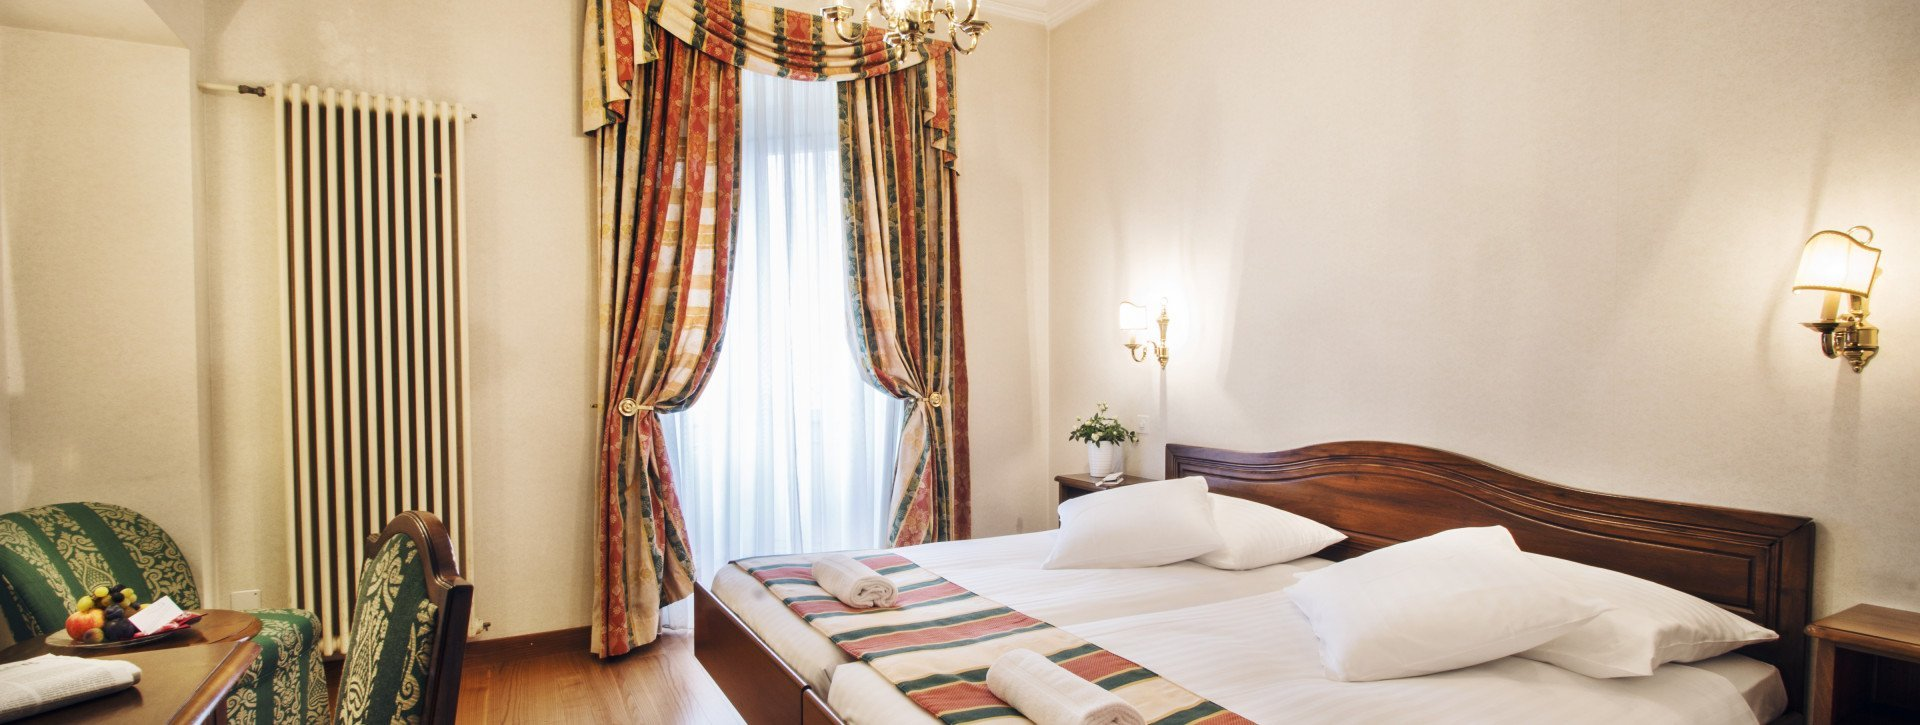 Double Classic room in the International au Lac Historic Lakeside Hotel